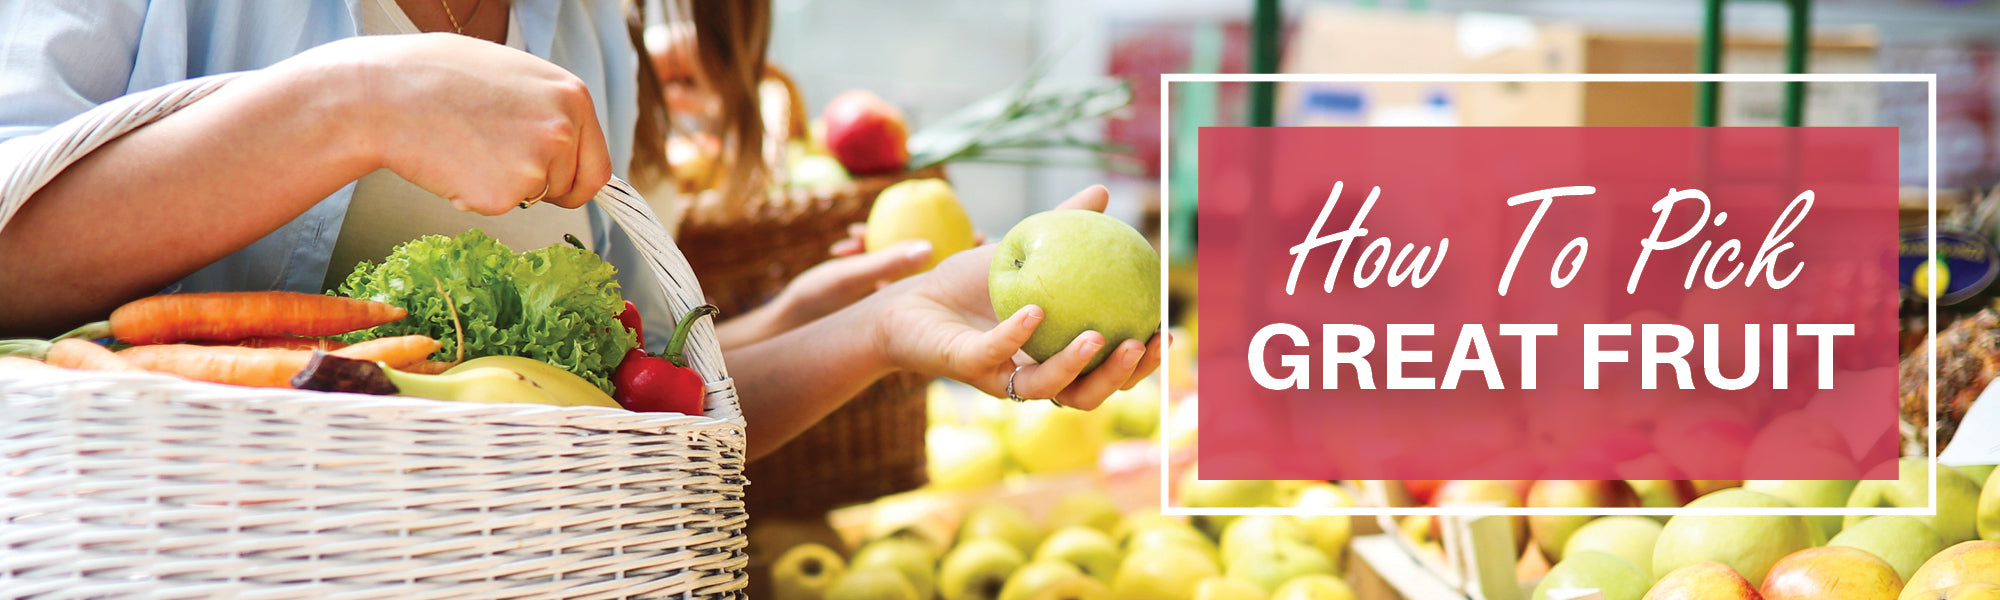 How to Pick Great Fruit